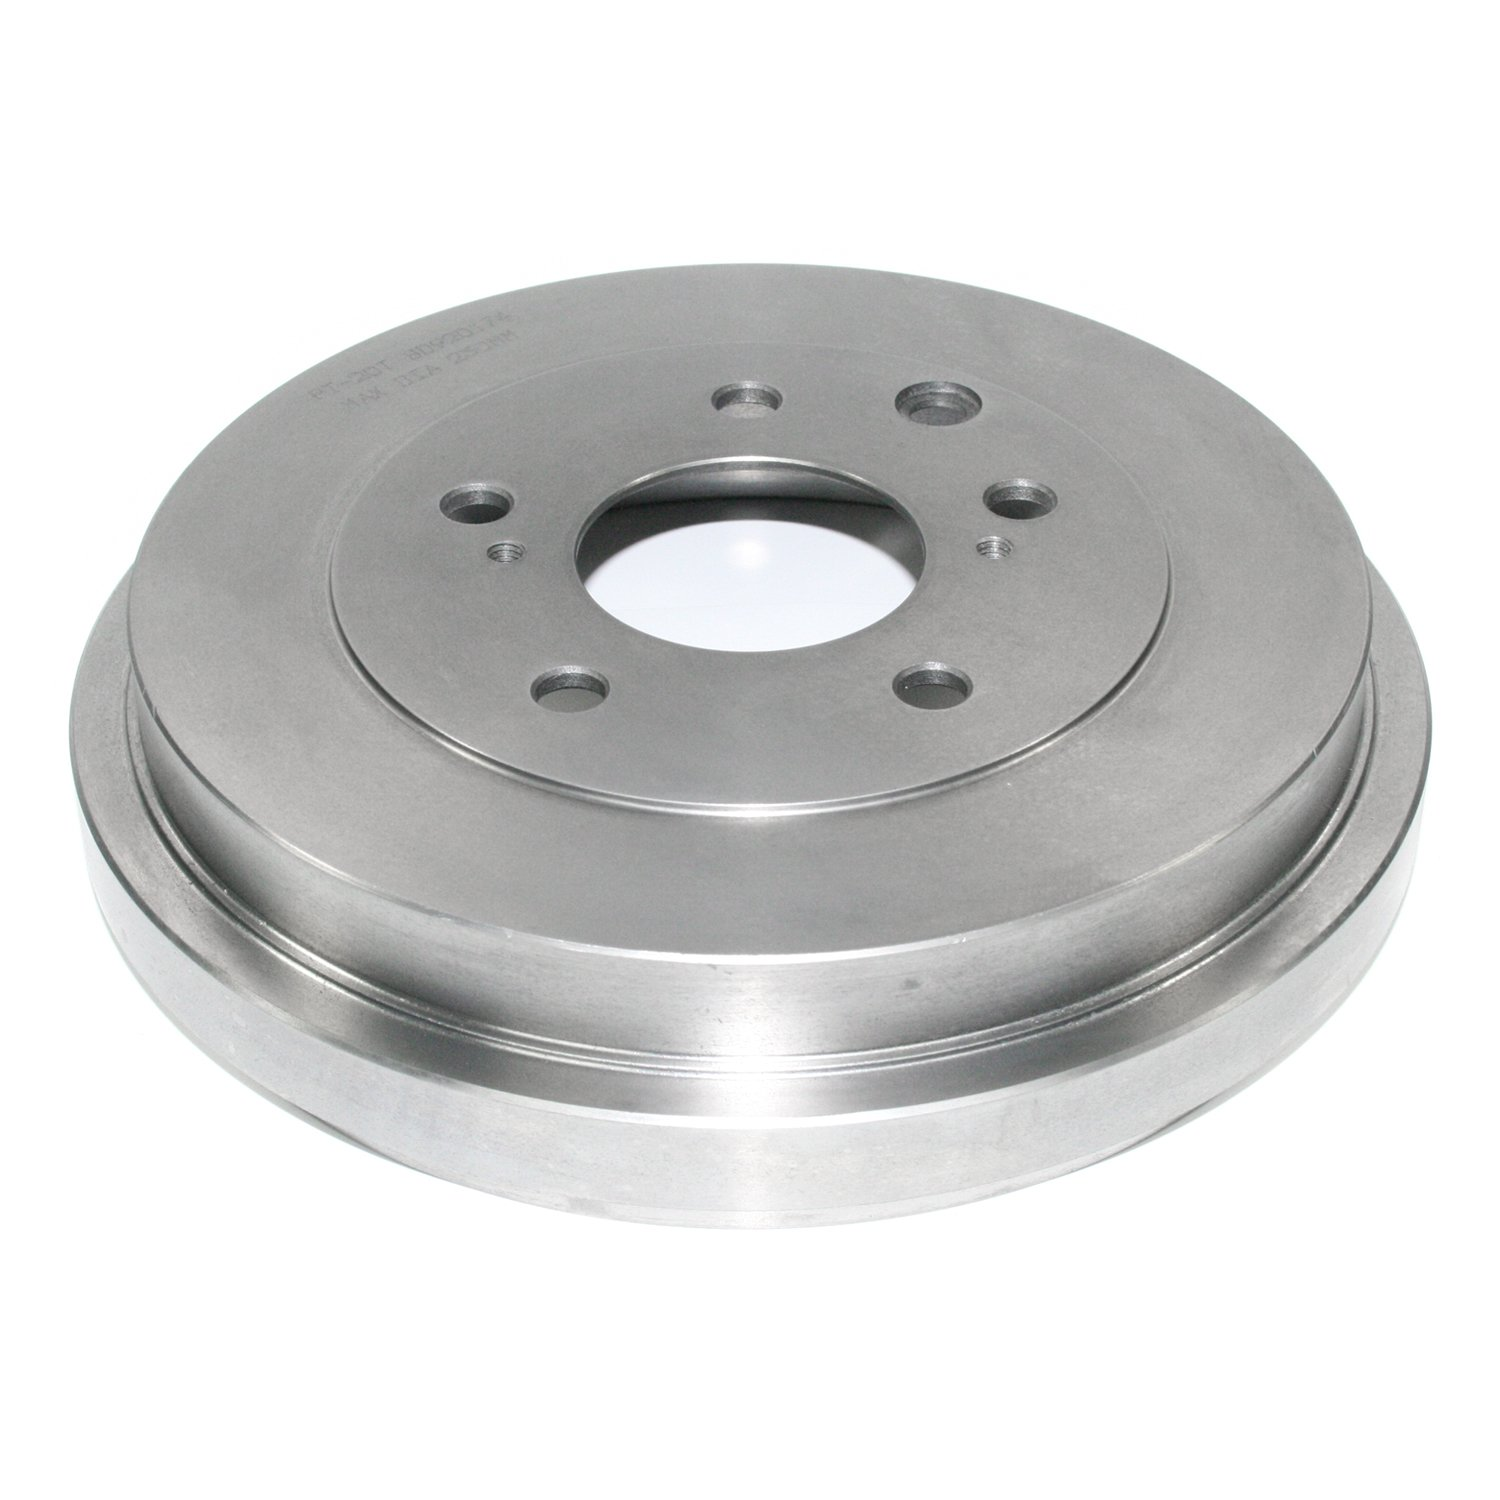 DuraGo BD920174 Rear Brake Drum